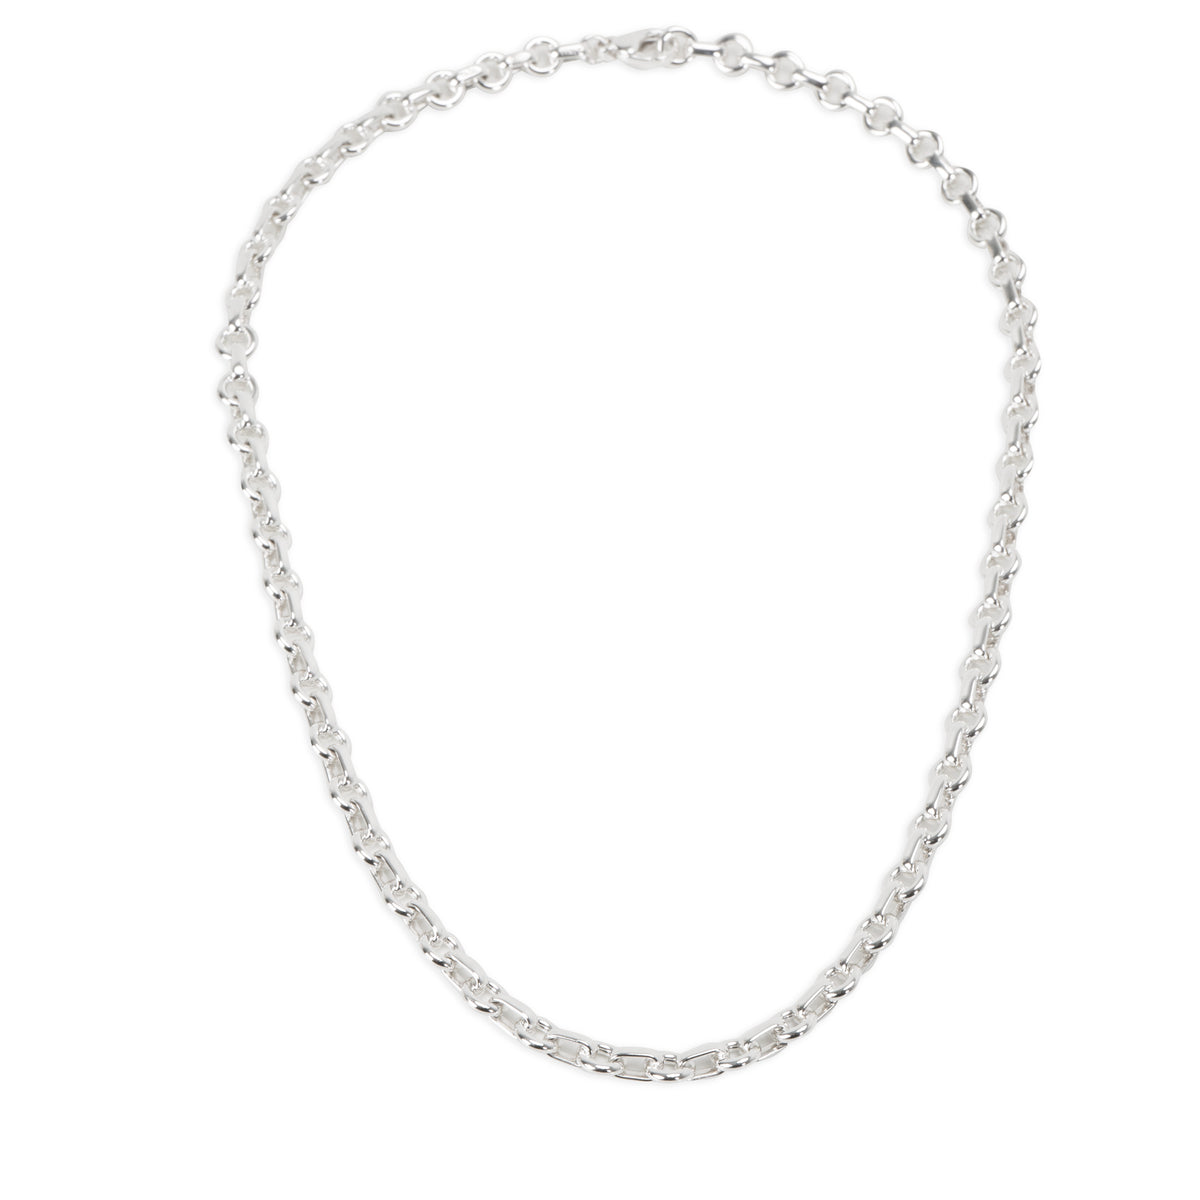 Tiffany & Co. Round Oval Link Necklace in  Sterling Silver